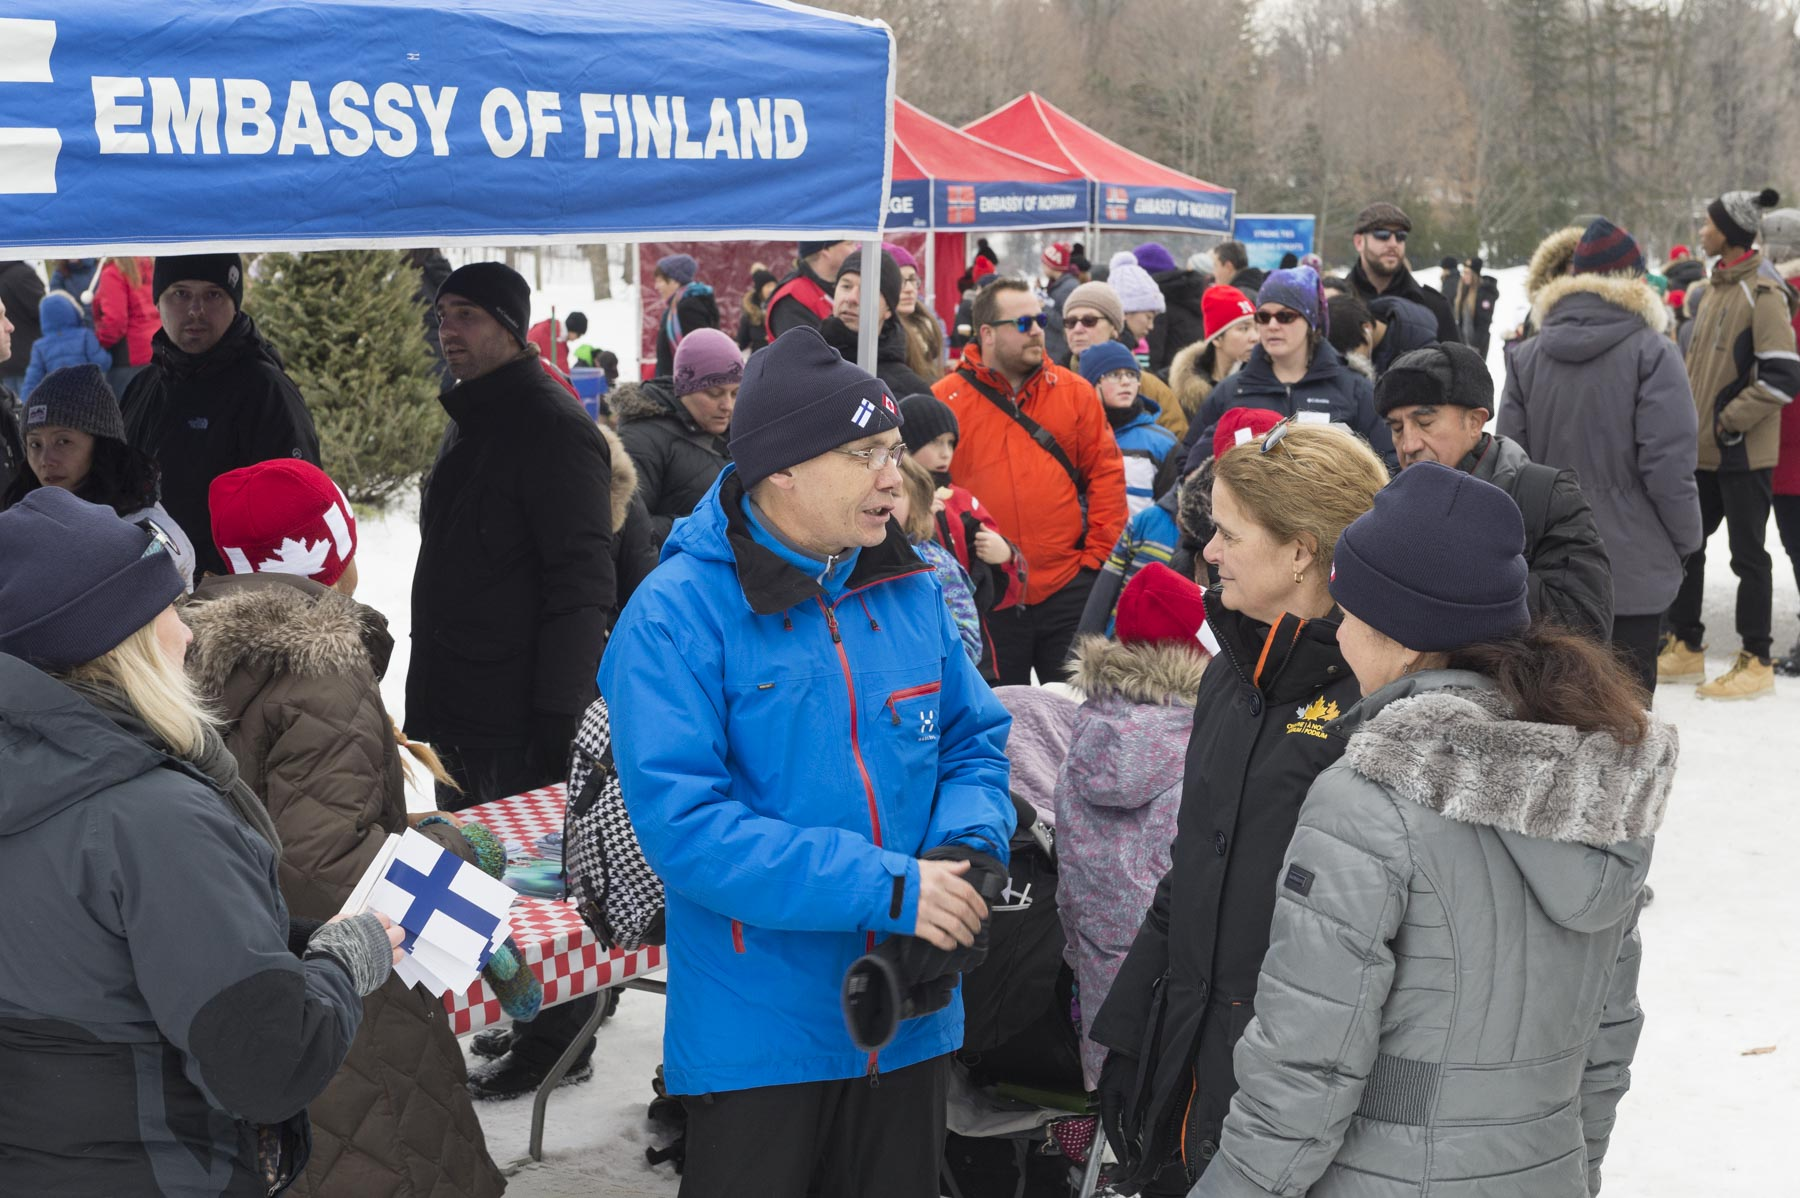 Ambassador of Finland, His Excellency Vesa Lehtoneno, talked with the Governor General. A team from the embassy was helping participants to experiment kicksledding, a chair-mounted sled.